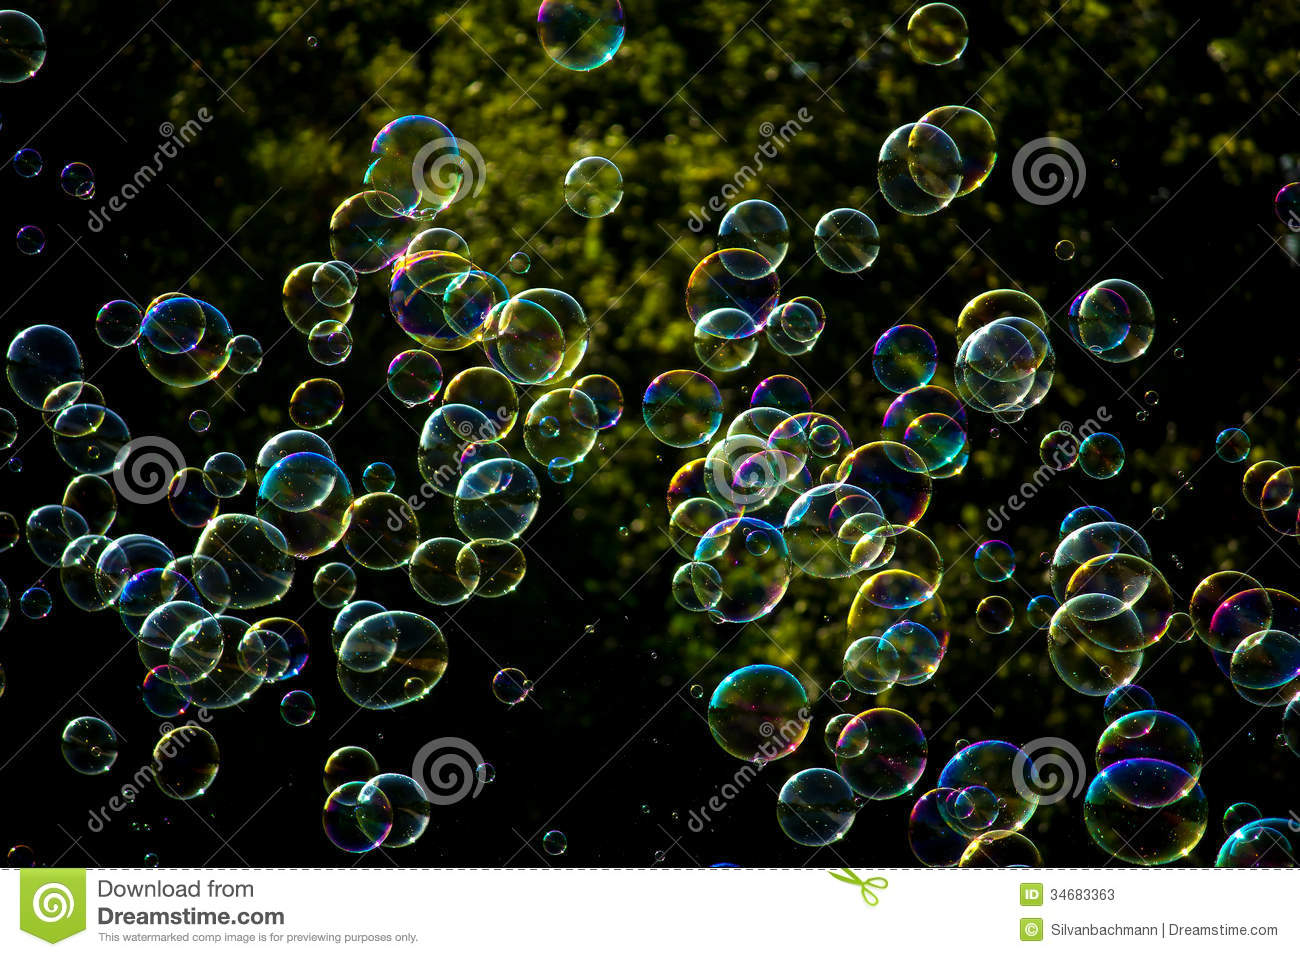 Colorful Soap Bubbles Images & Pictures - Becuo